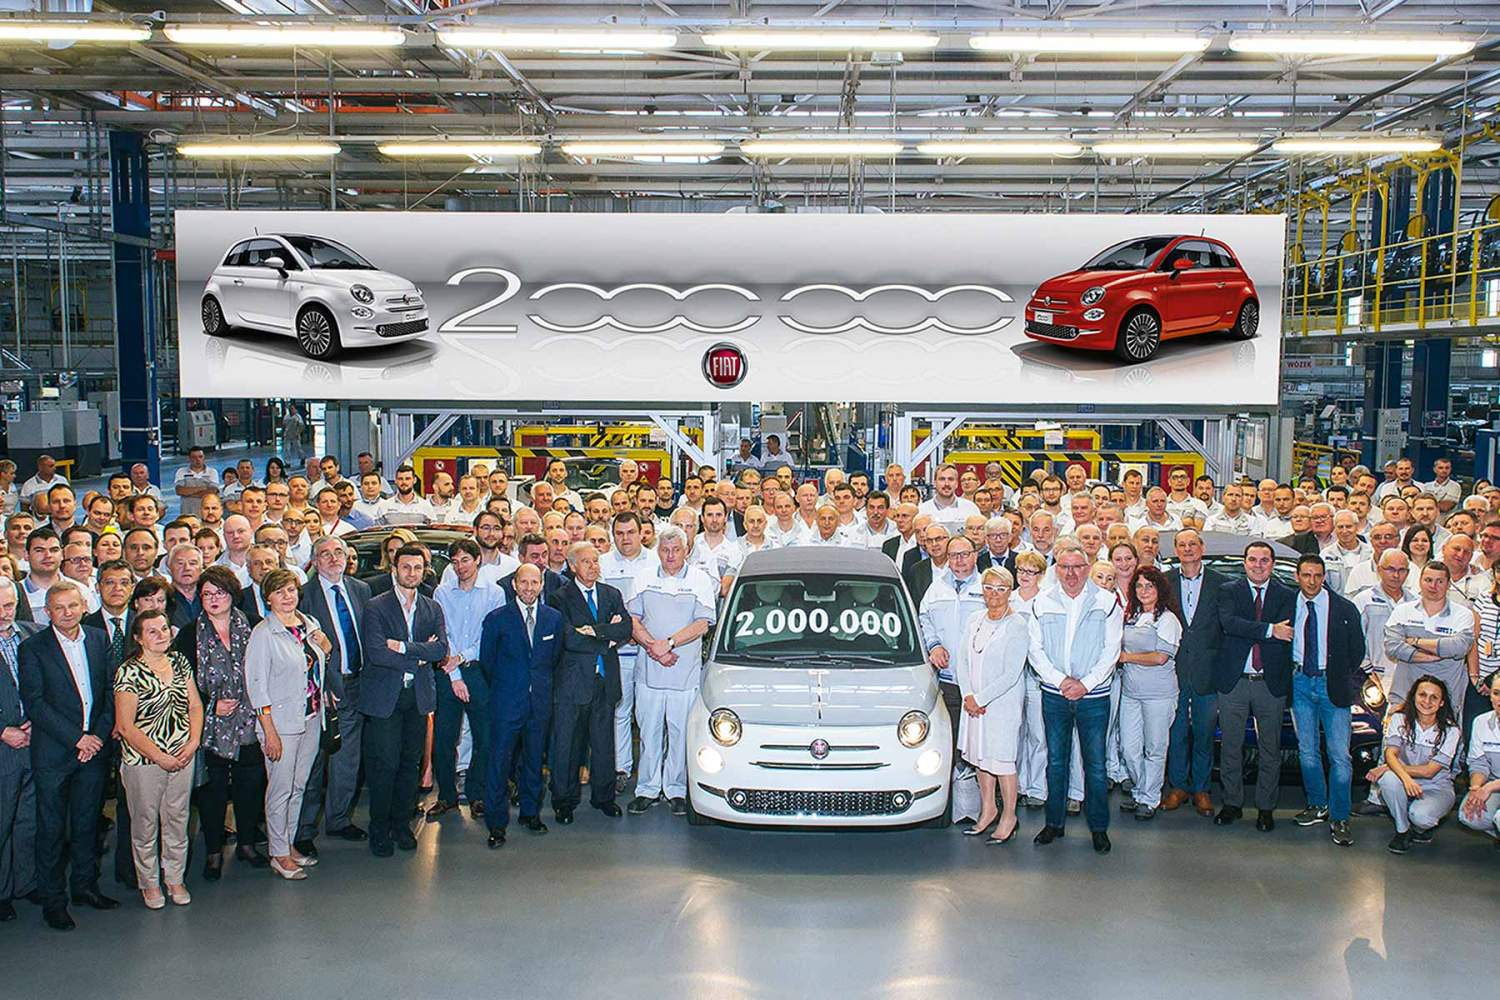 The 2 millionth Fiat 500